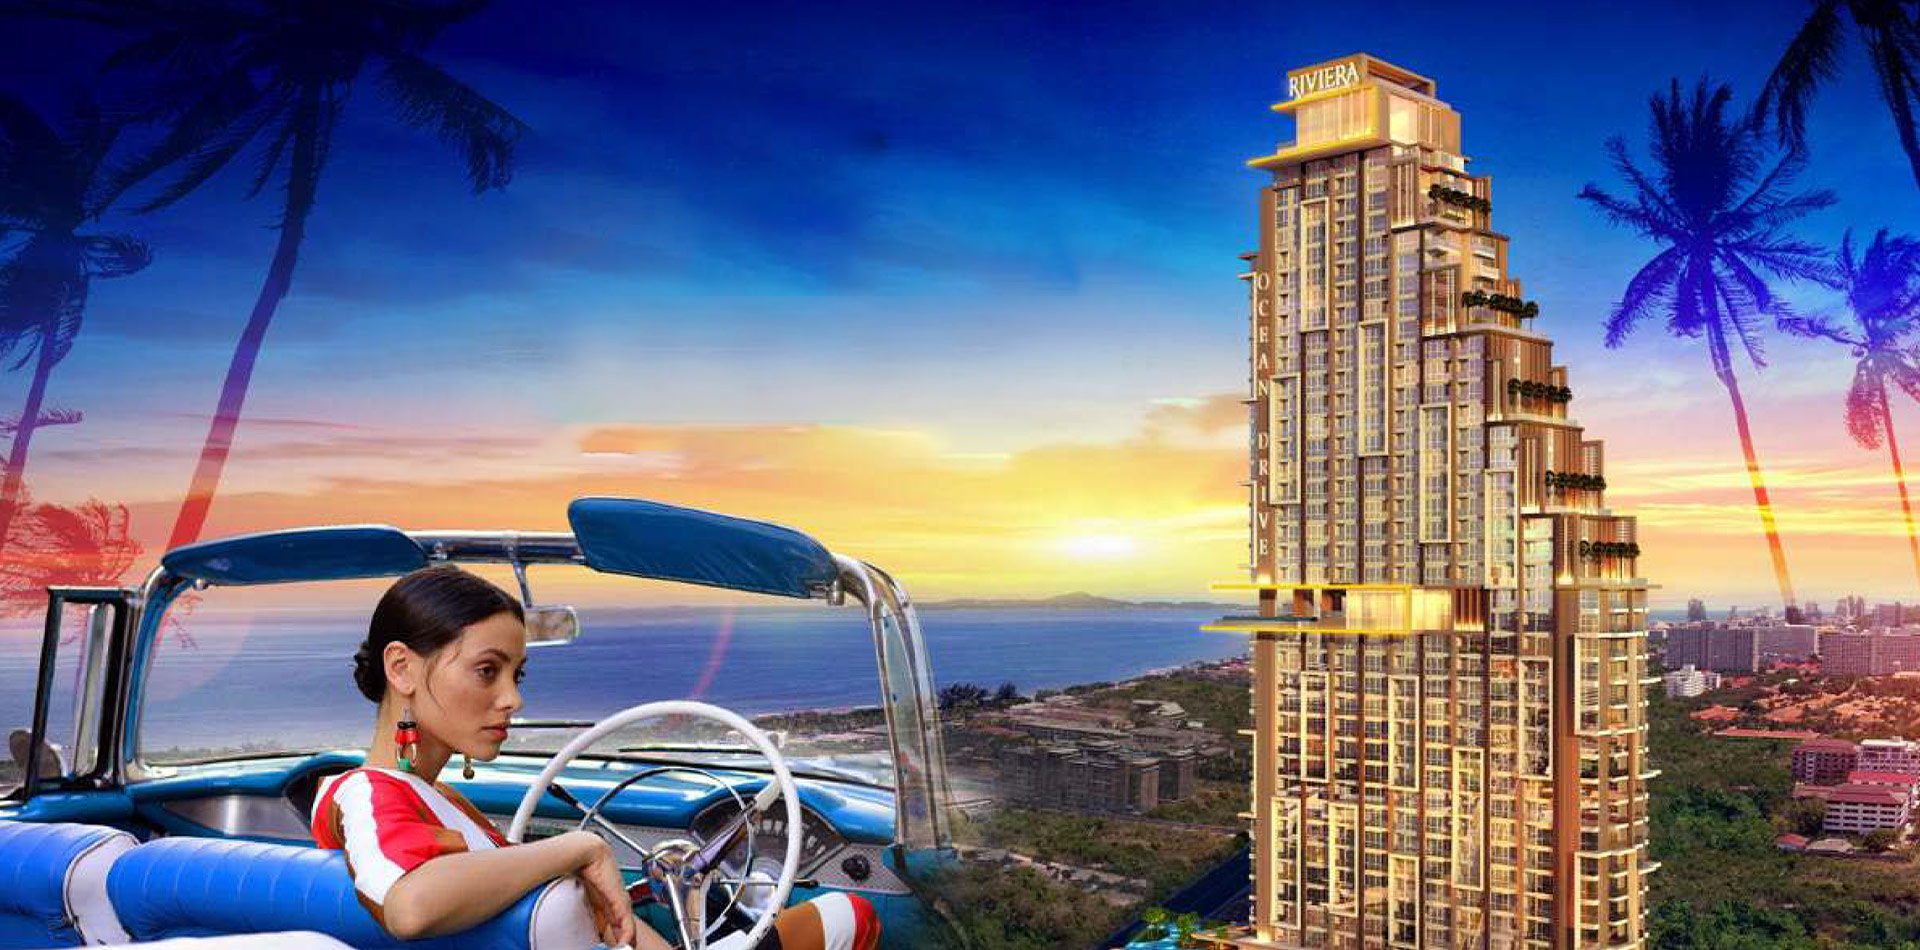 The riviera ocean drive condo pattaya